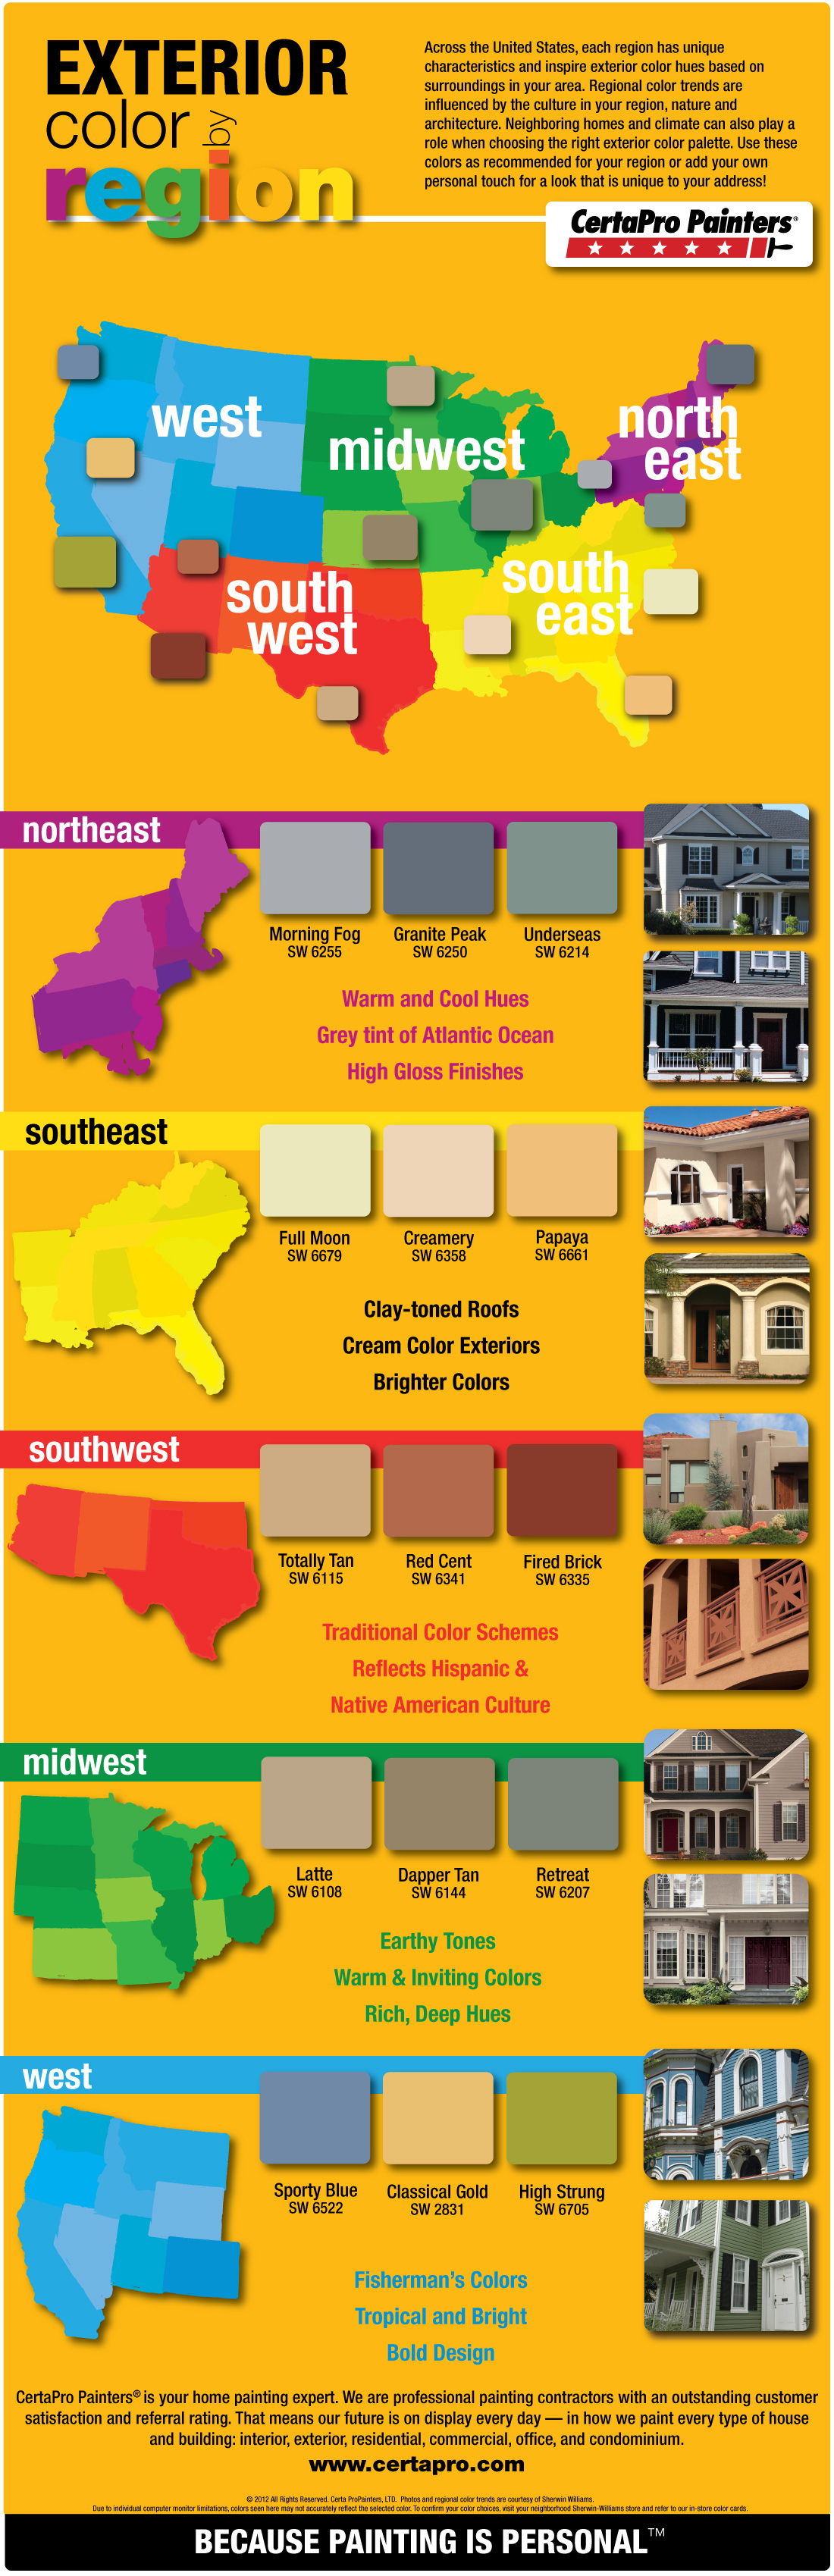 Exterior Color Trends By Region Infographic By Certapro Painters